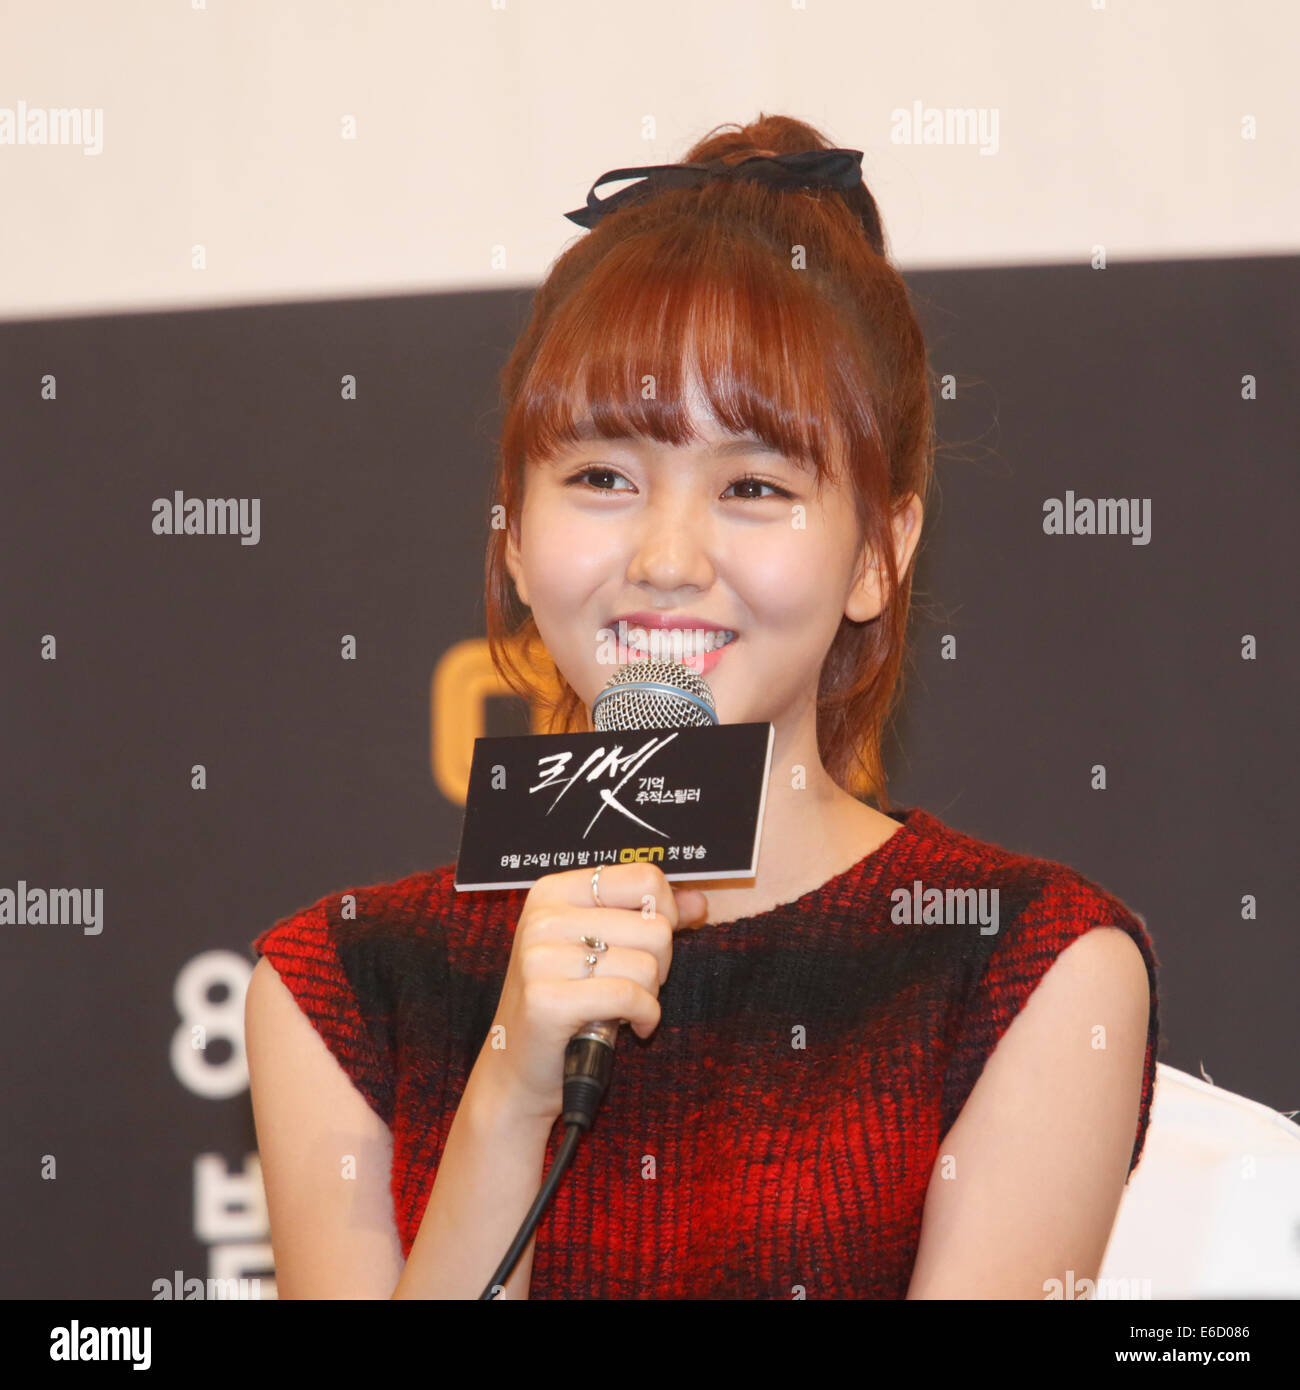 Seoul, South Korea  20th Aug, 2014  South Korean actress Kim So-hyun